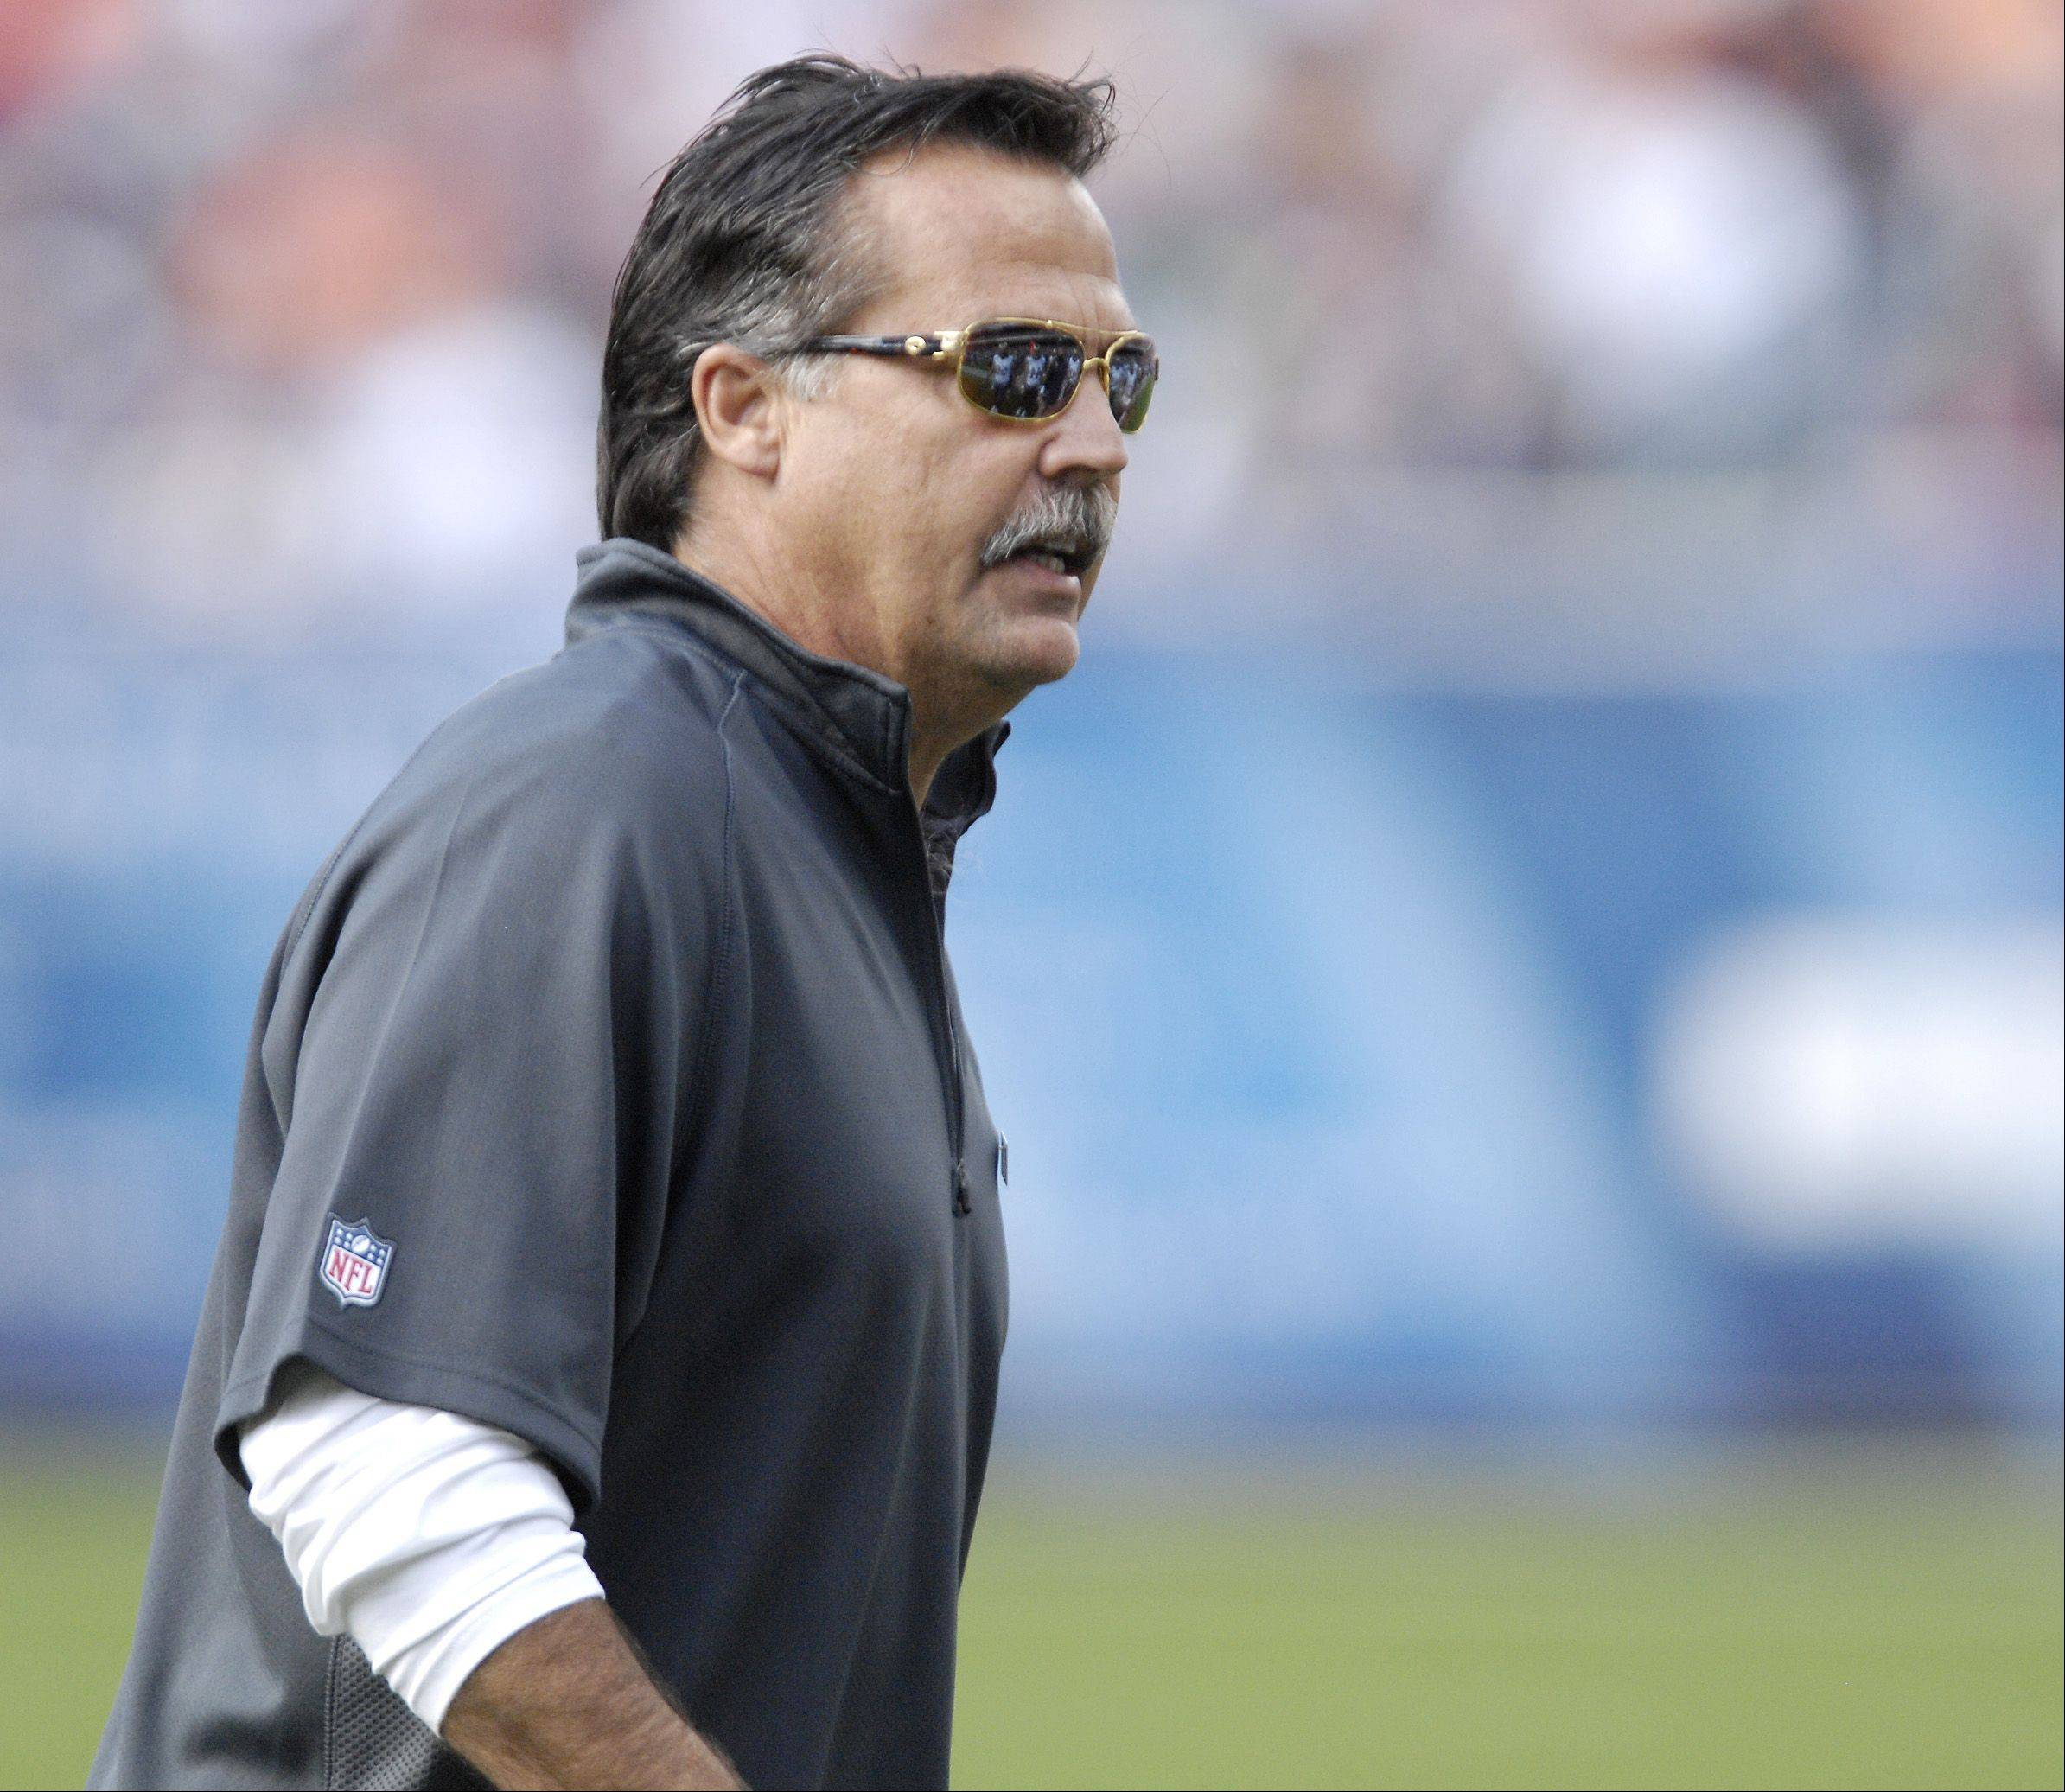 St. Louis Rams Head Coach Jeff Fisher during a game against the Chicago Bears at Soldier Field in Chicago.